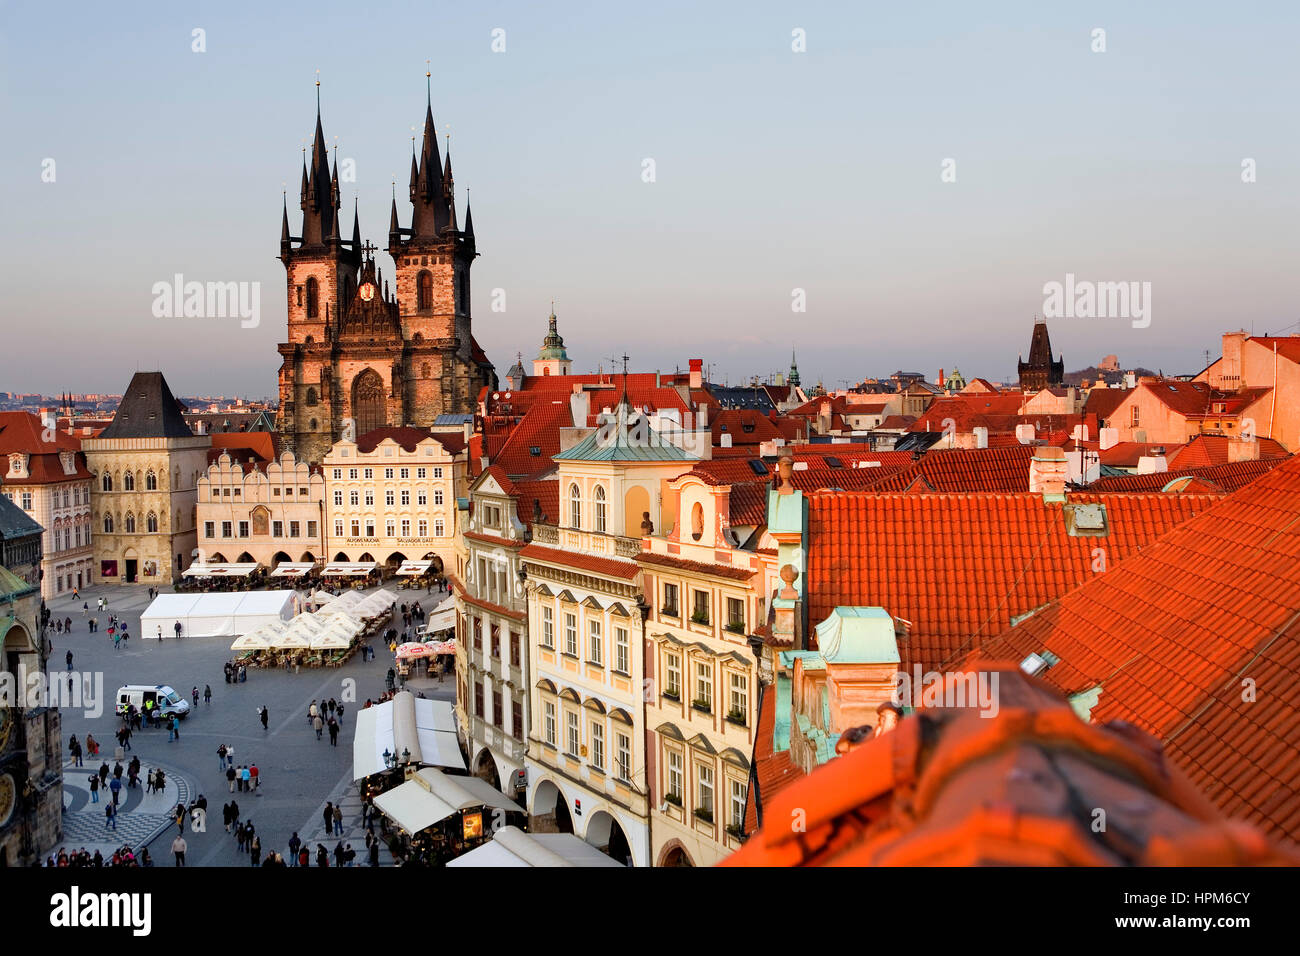 The Old town square with  the Tyn church. At right housetops and  Powder tower.Prague. Czech Republic - Stock Image